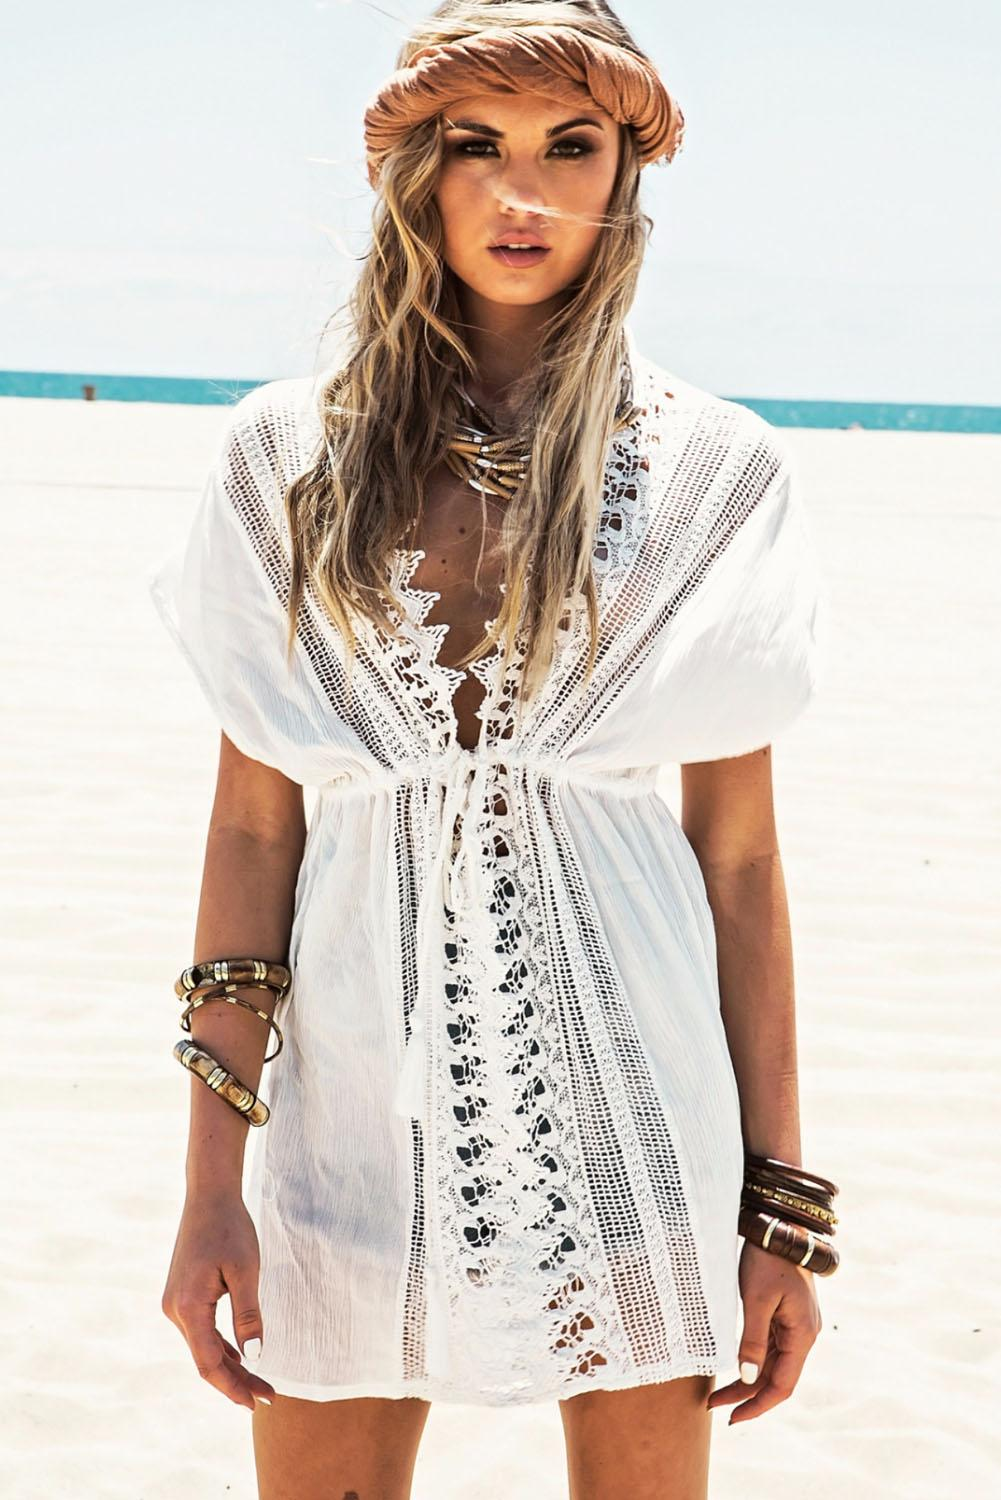 Summer White Short Sleeve V Neck Cotton Beach Caftans Lace Crochet Tunic Beach Cover Ups Sexy Kaftan Bikini Swimsuit Cover Up Dress 41510